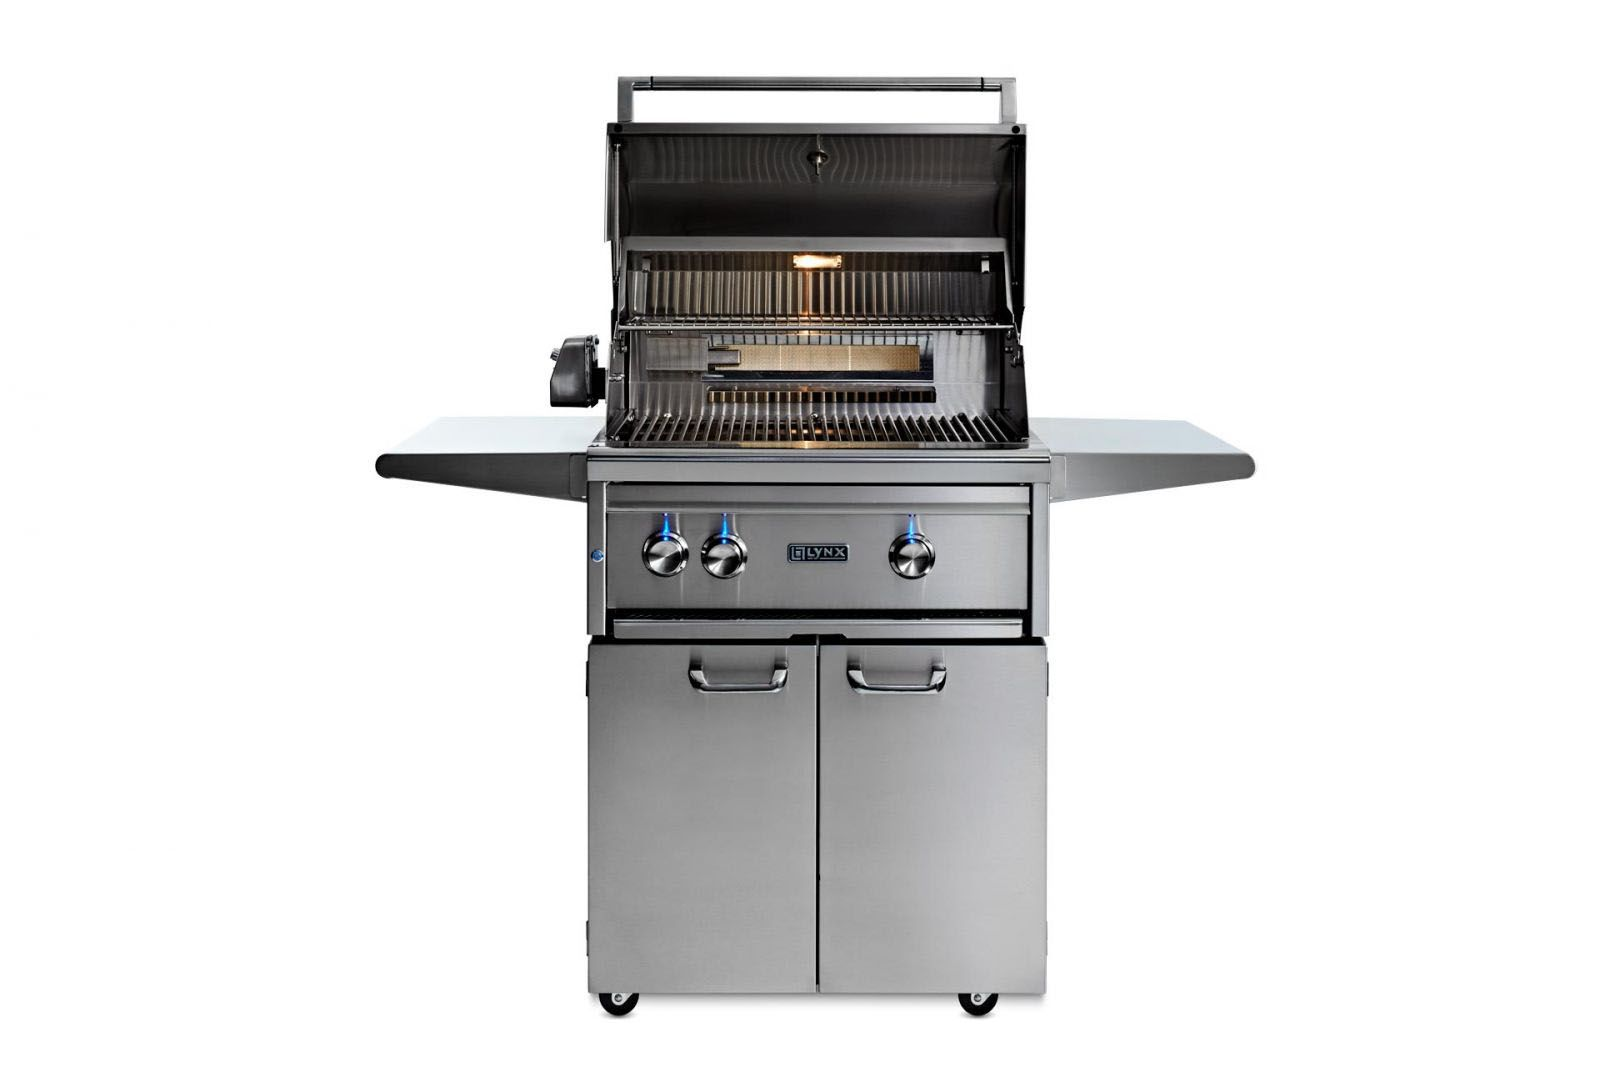 A Lynx Professional 27-inch propane grill that now sells for about $3,000 would cost about $350 more.